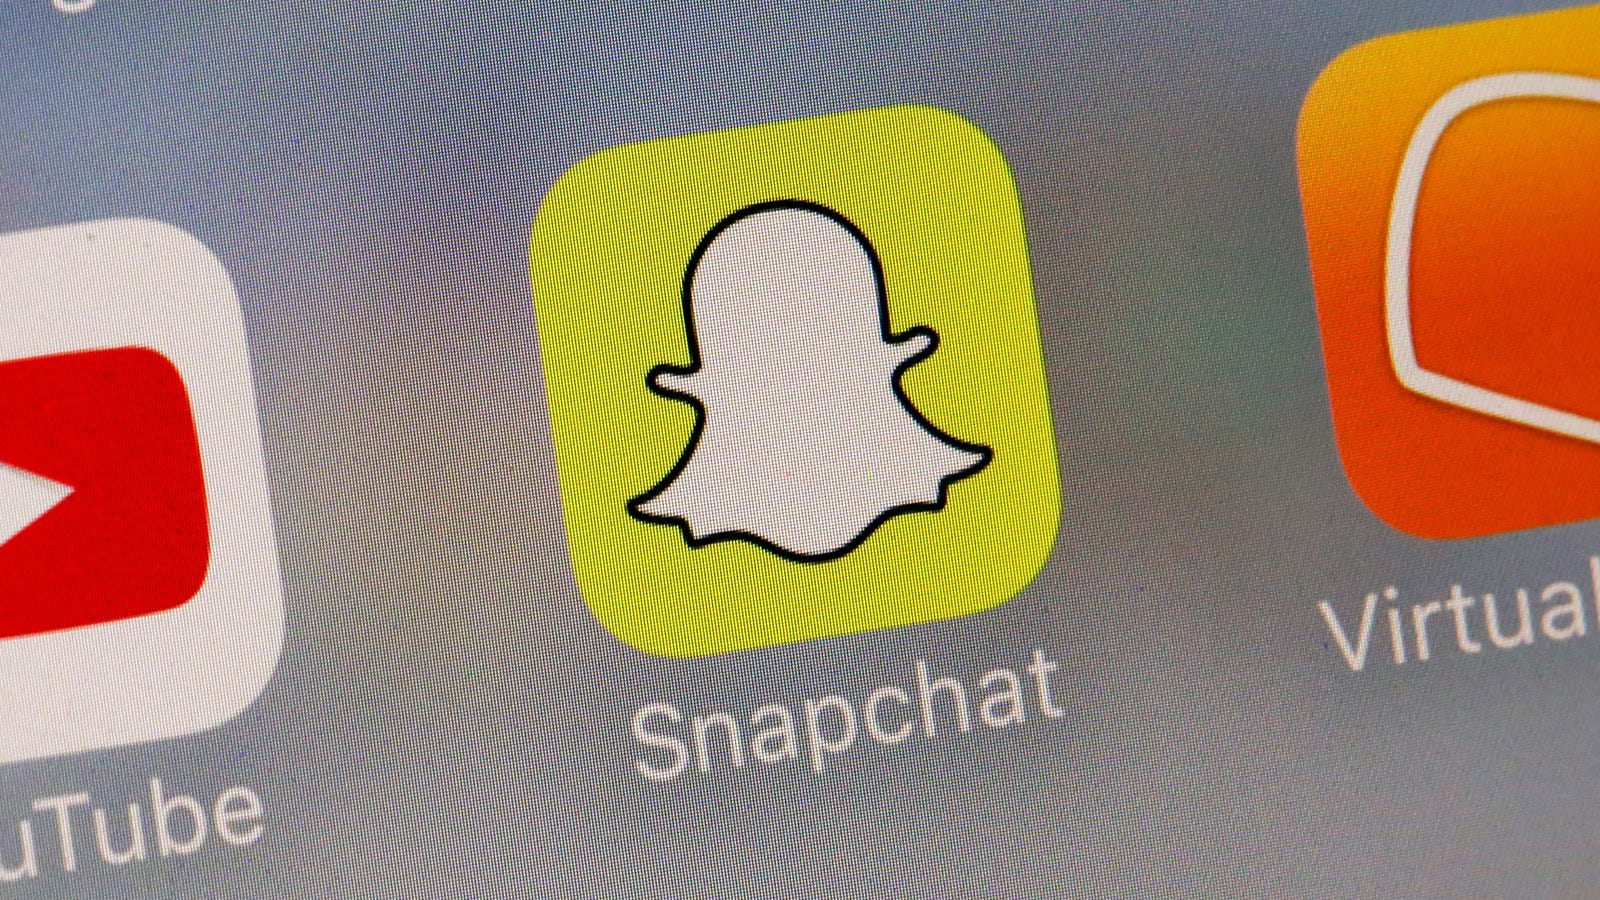 Snap's H.R. Chief Allegedly Warned Staff About Serial Killers, Described Military Masturbation Techniques